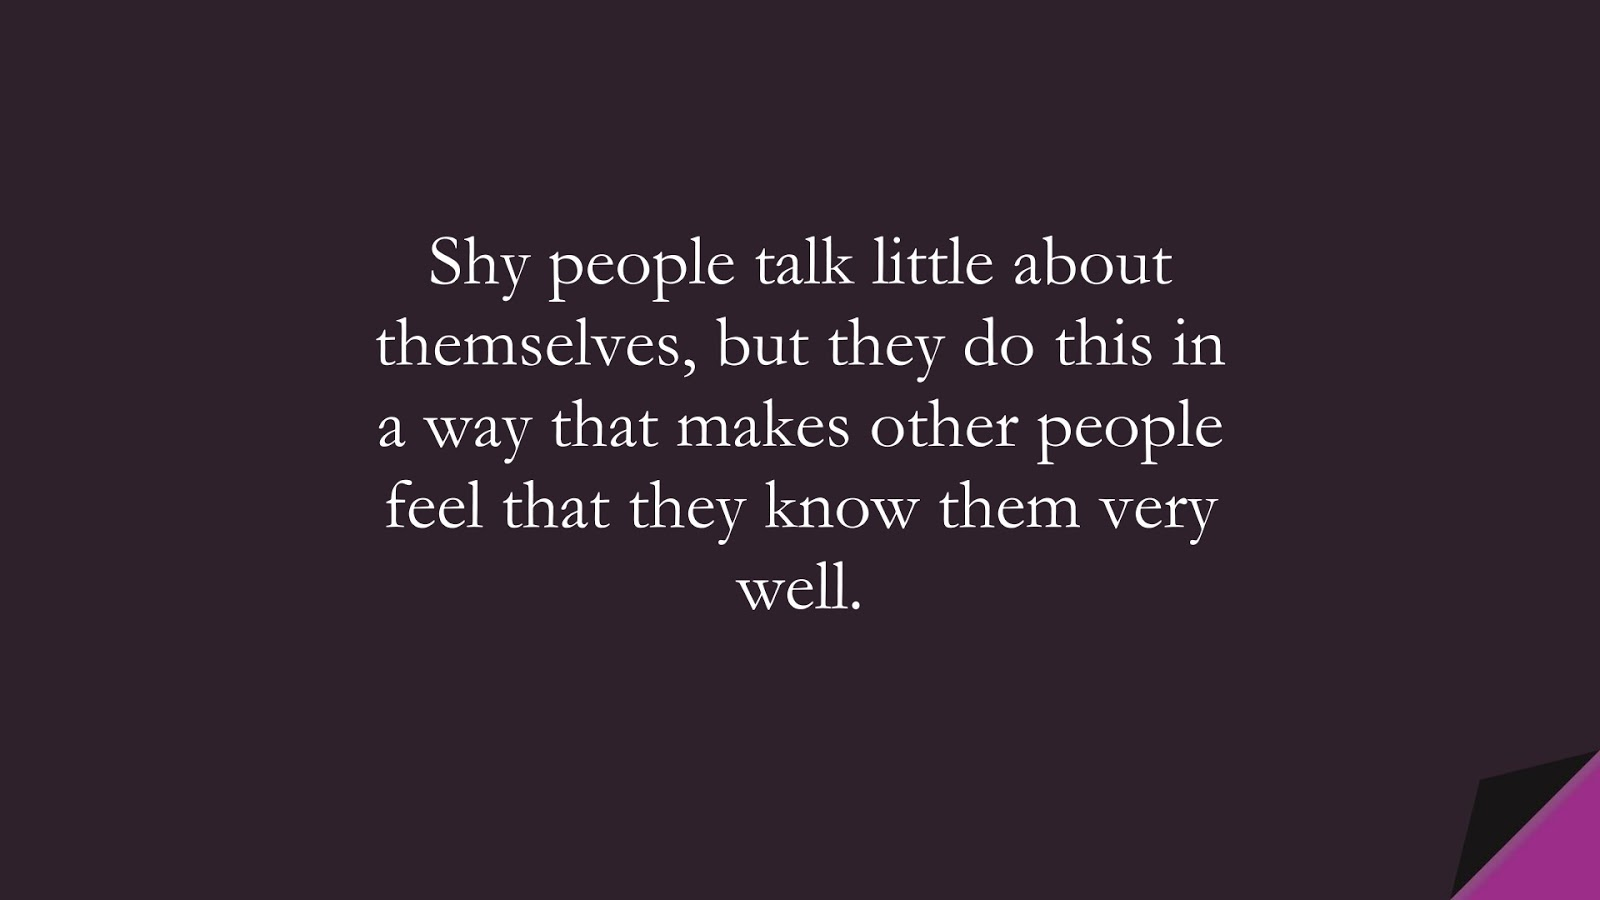 Shy people talk little about themselves, but they do this in a way that makes other people feel that they know them very well.FALSE